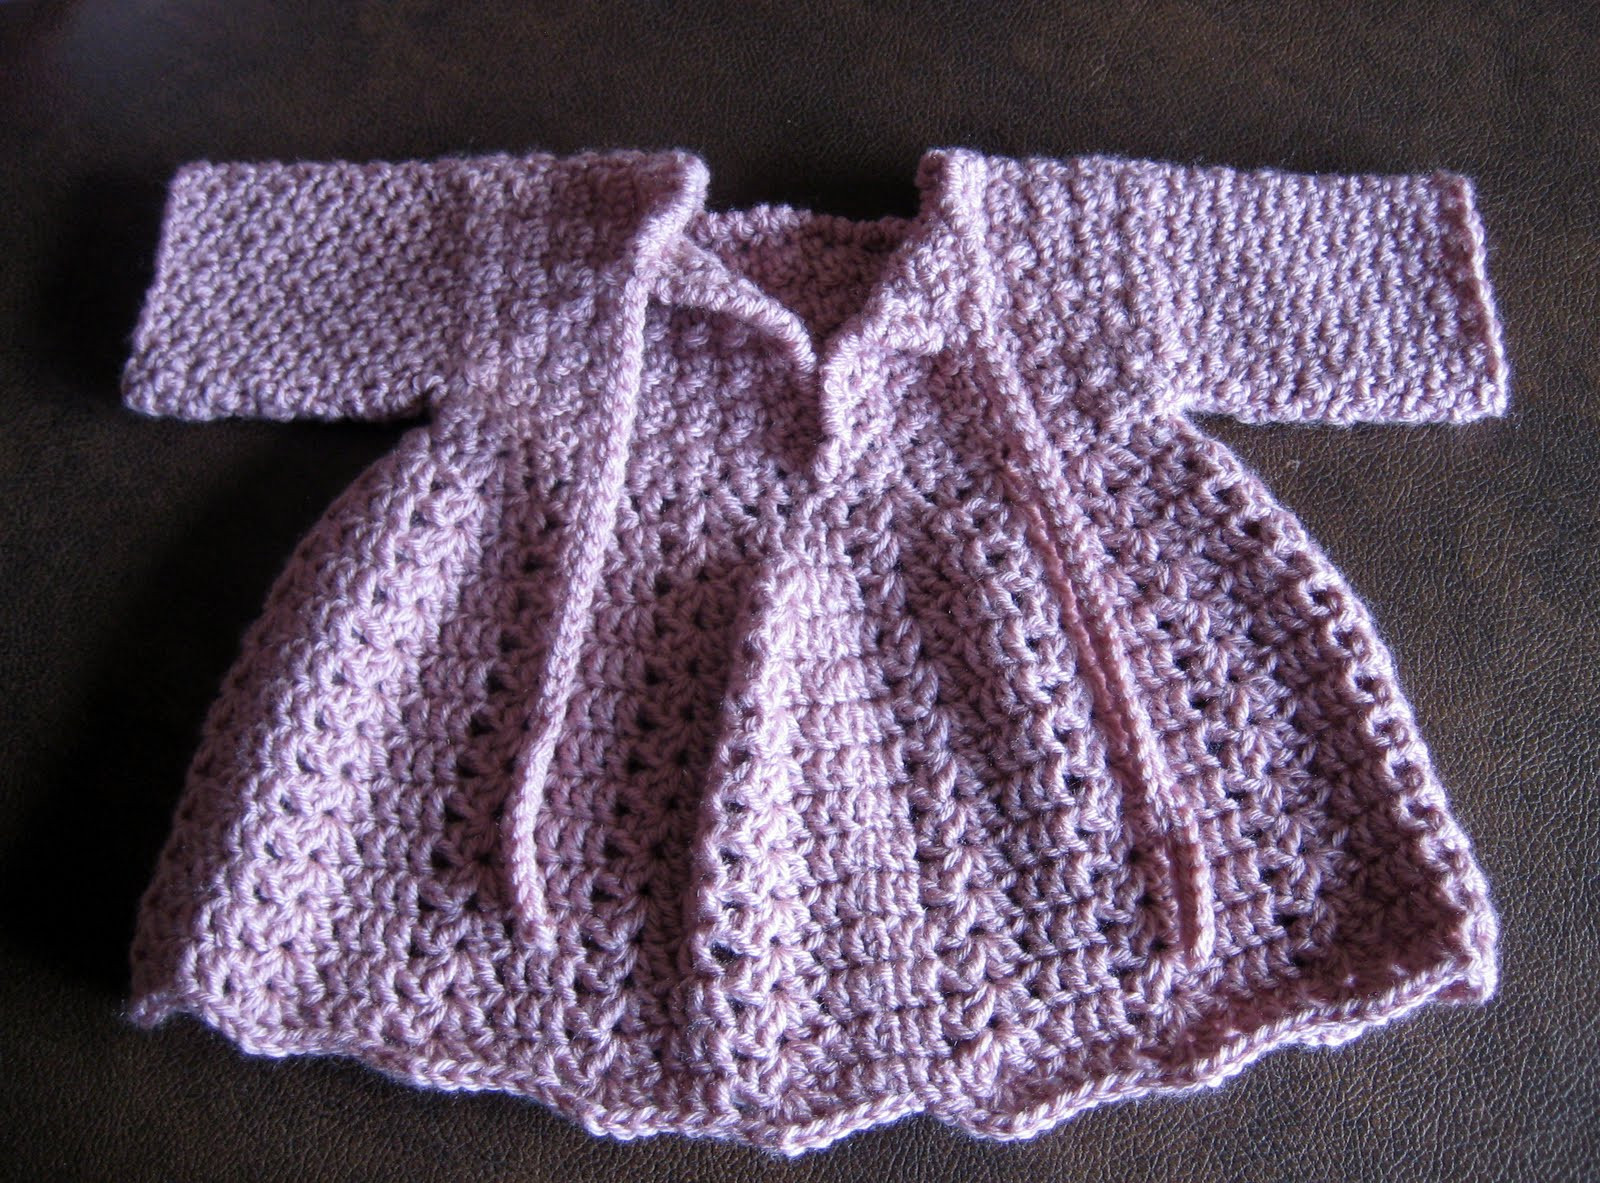 Lovely Crochet Baby Dress Patterns for Free Crochet Baby Clothes Patterns Of Amazing 44 Pictures Crochet Baby Clothes Patterns